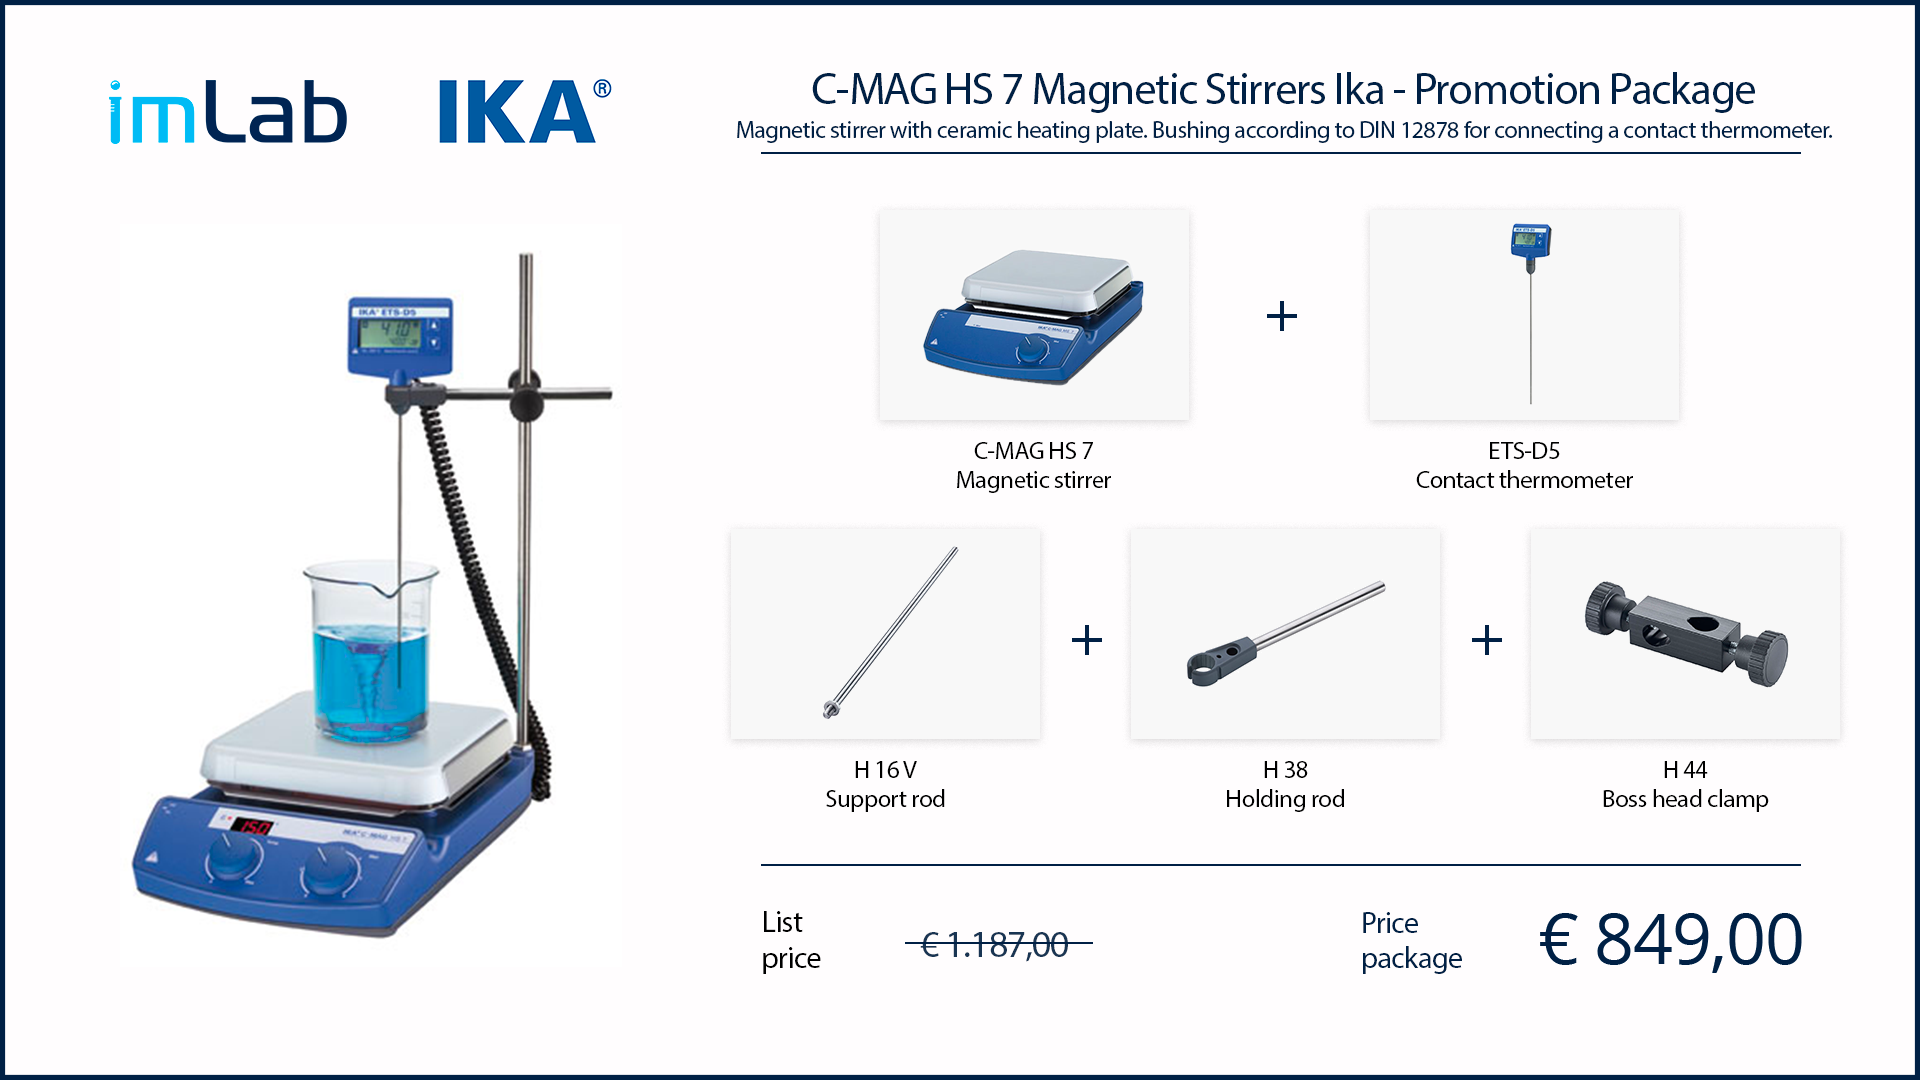 ika promotion c-mag hs-7 package magnetic stirrer imlab